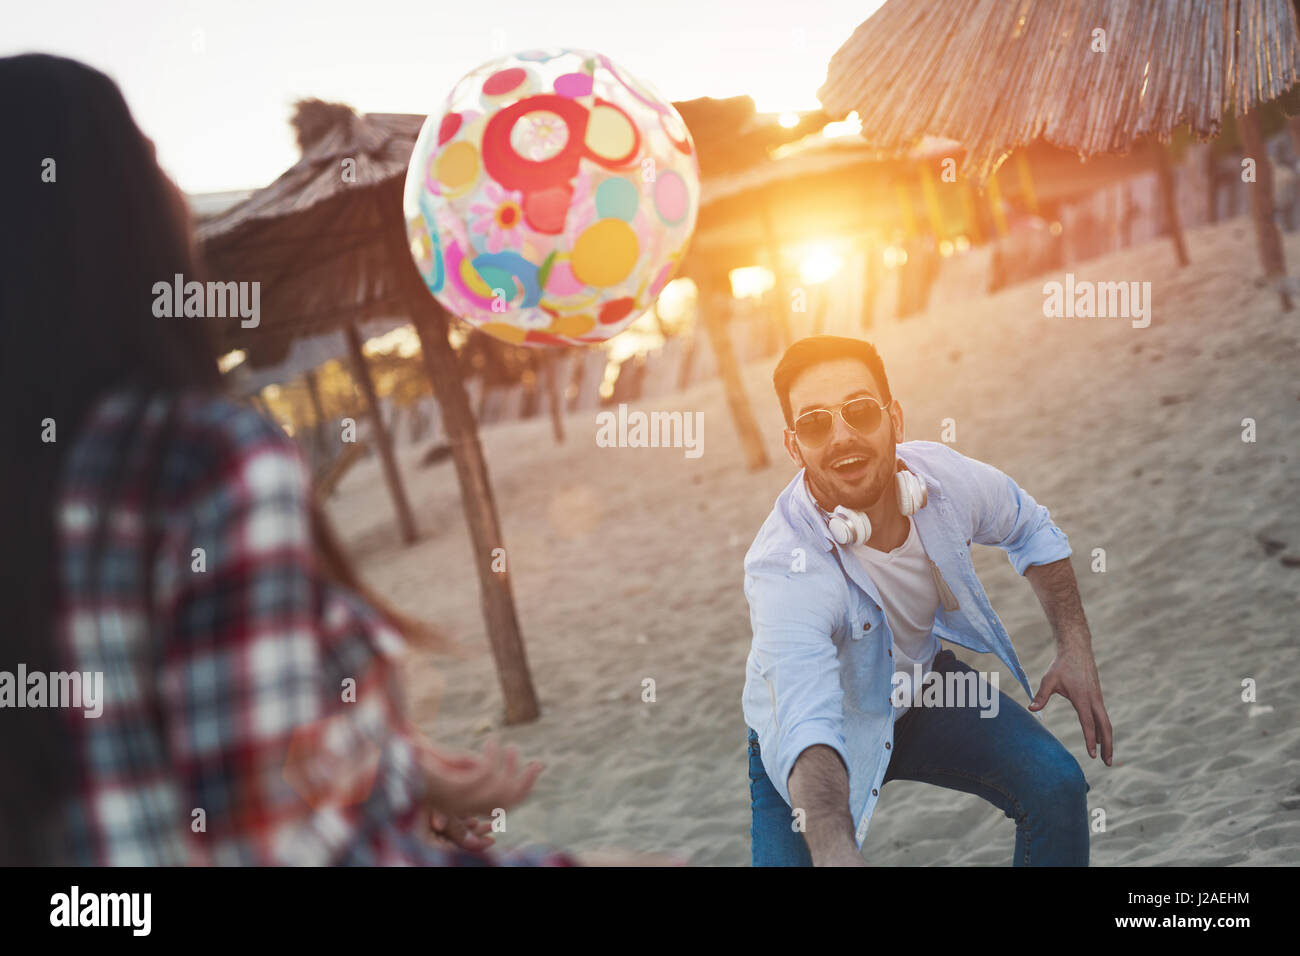 Group of happy young people having fun on beach during summer holiday - Stock Image